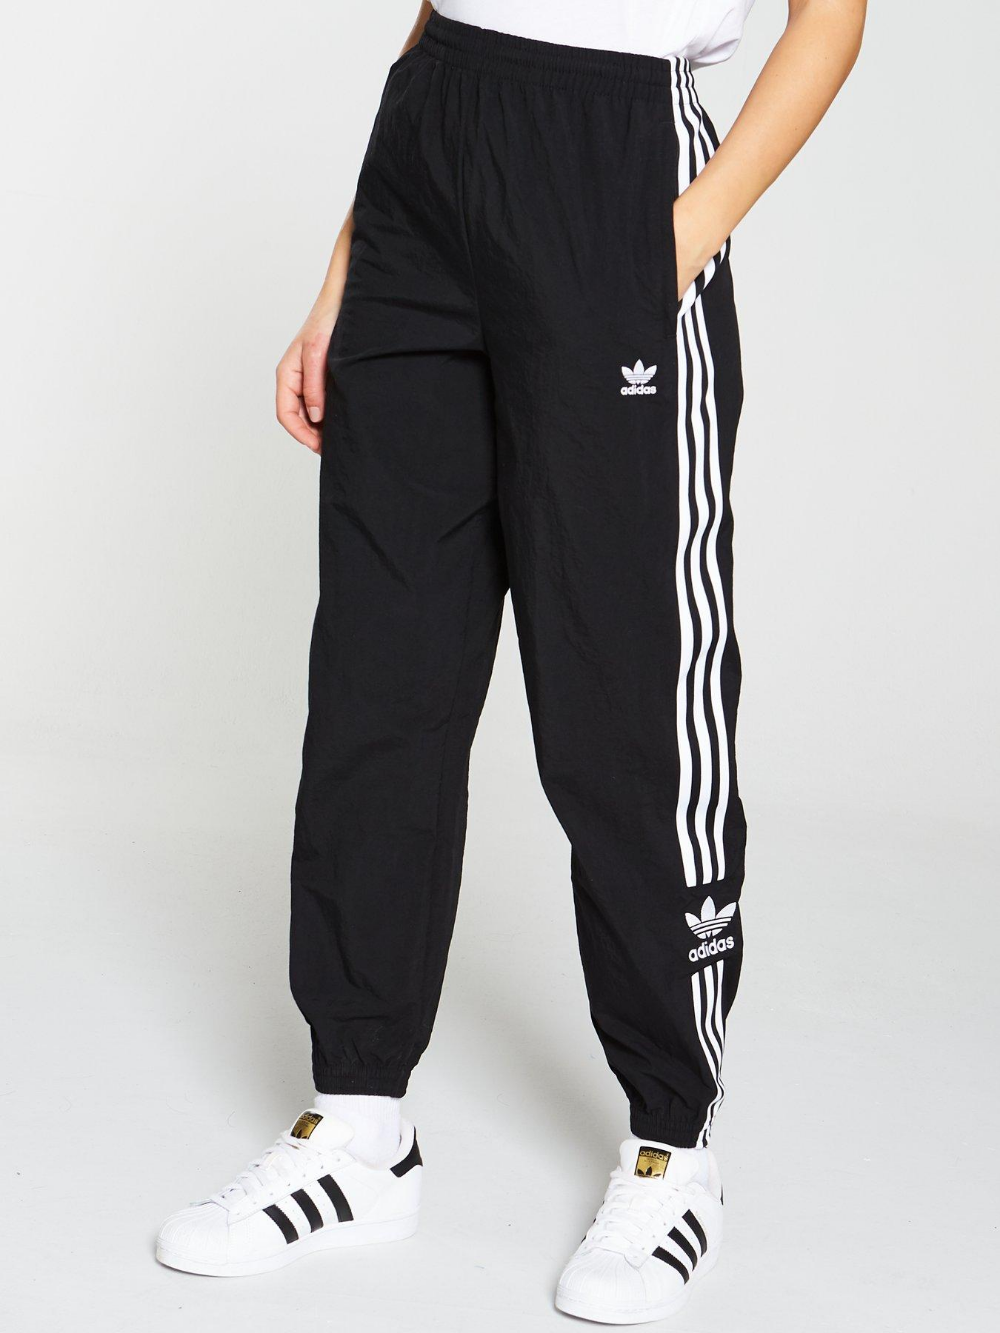 Adidas Originals SST Track Pants with Cotton worn by